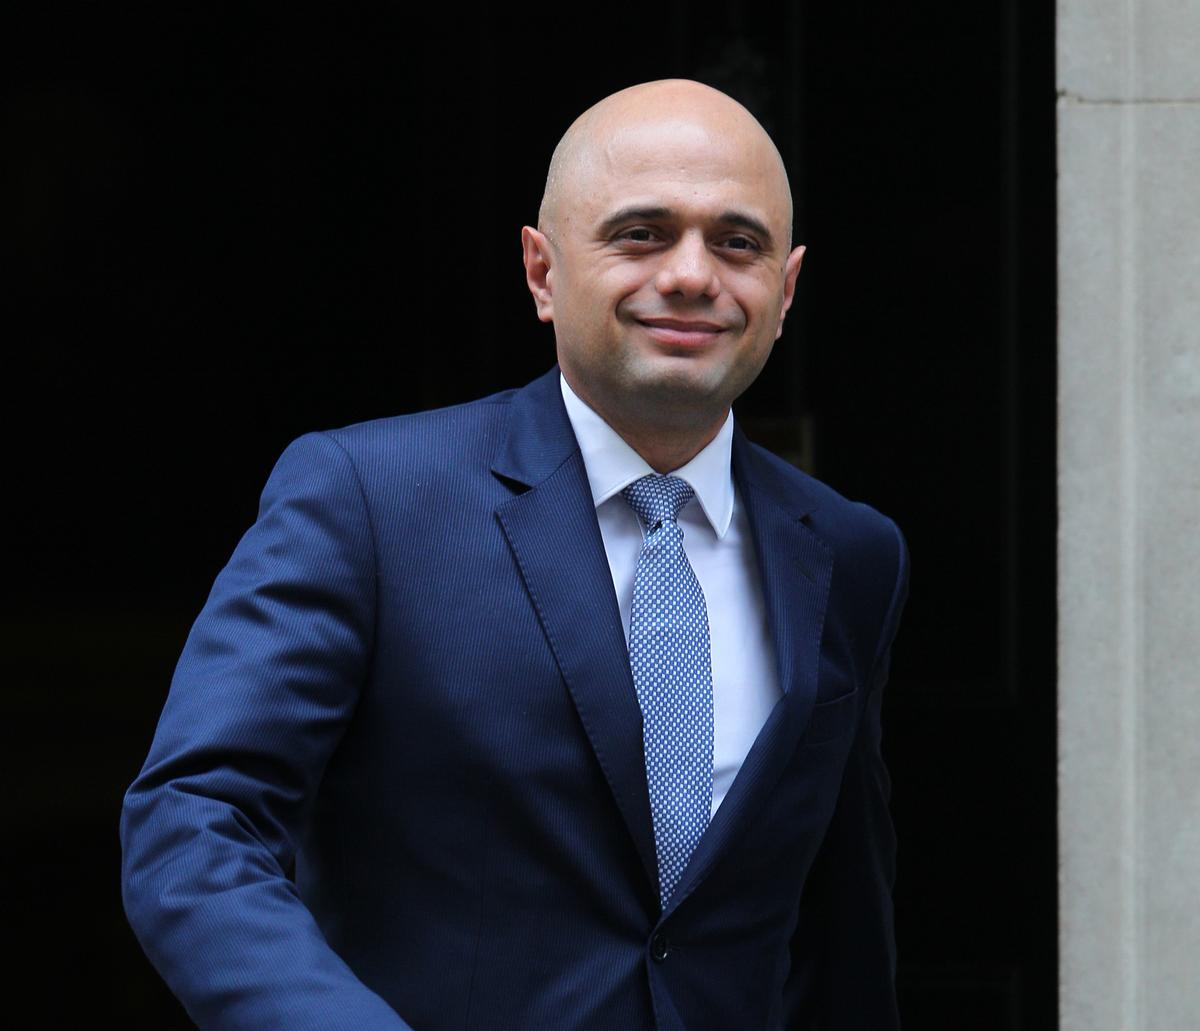 Javid has hinted that the budget will include measures to ignite a 'decade of renewal' for Britain / Shutterstock